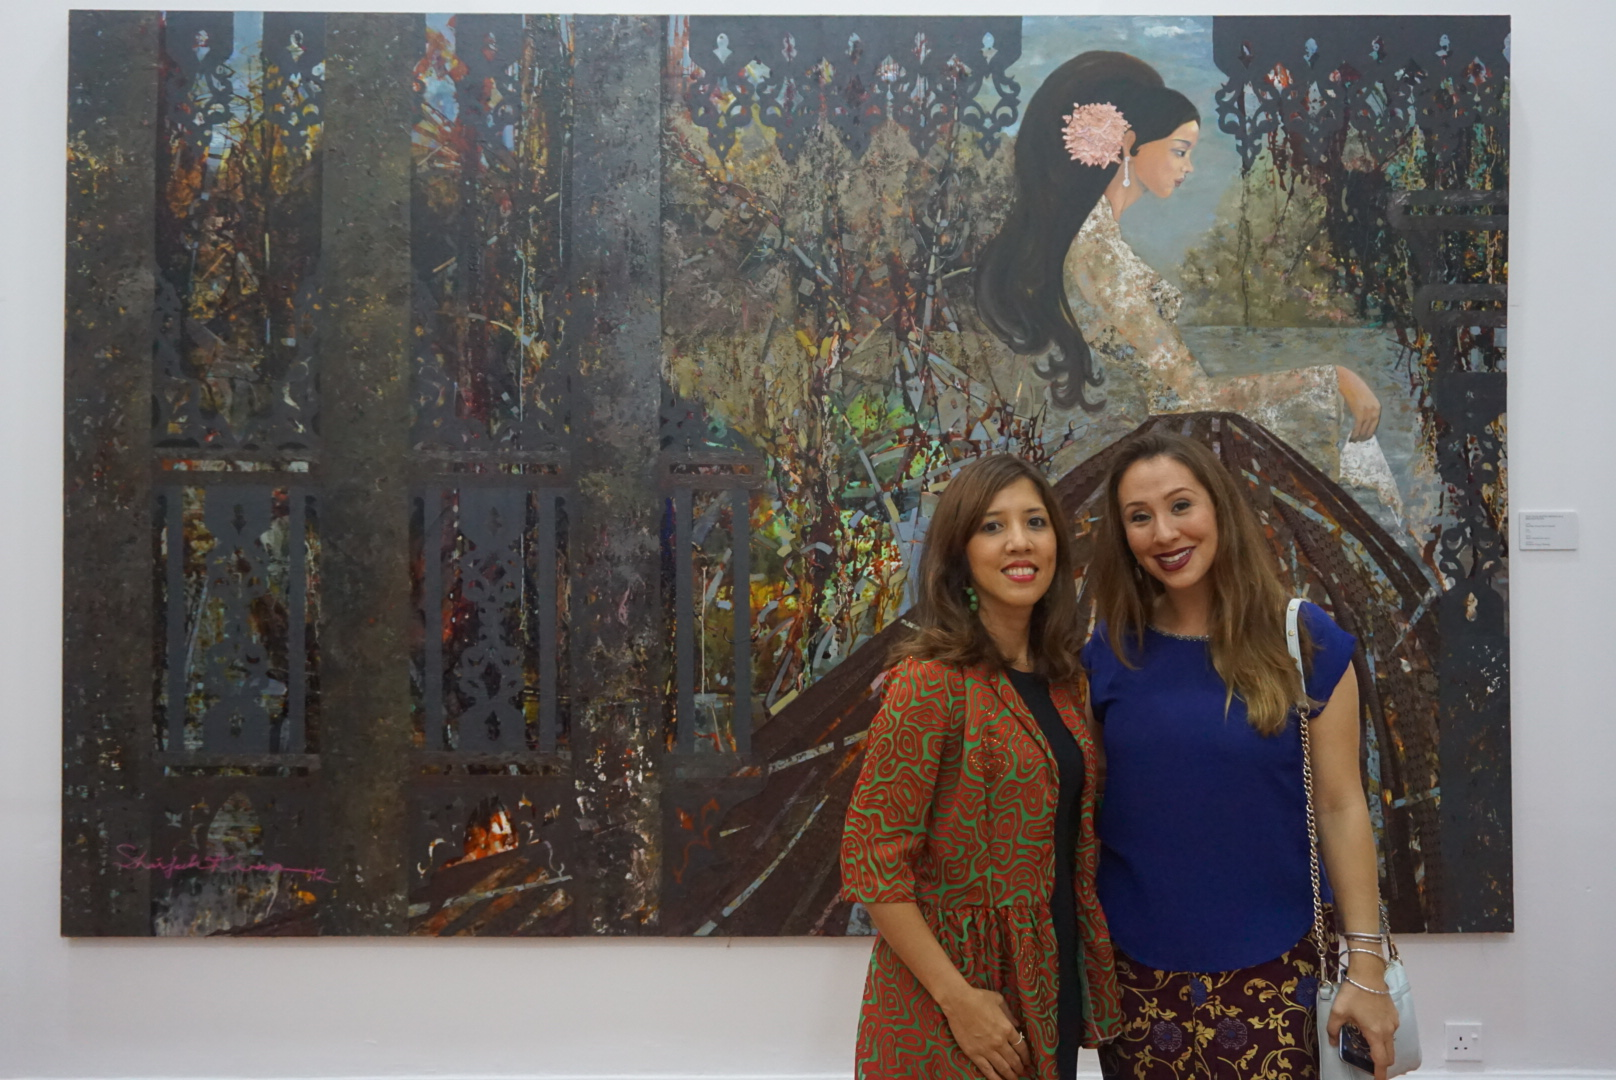 Farena and Yiga of Batik&Bubbles in front of one of the art pieces on display at the Pahang Art Museum.